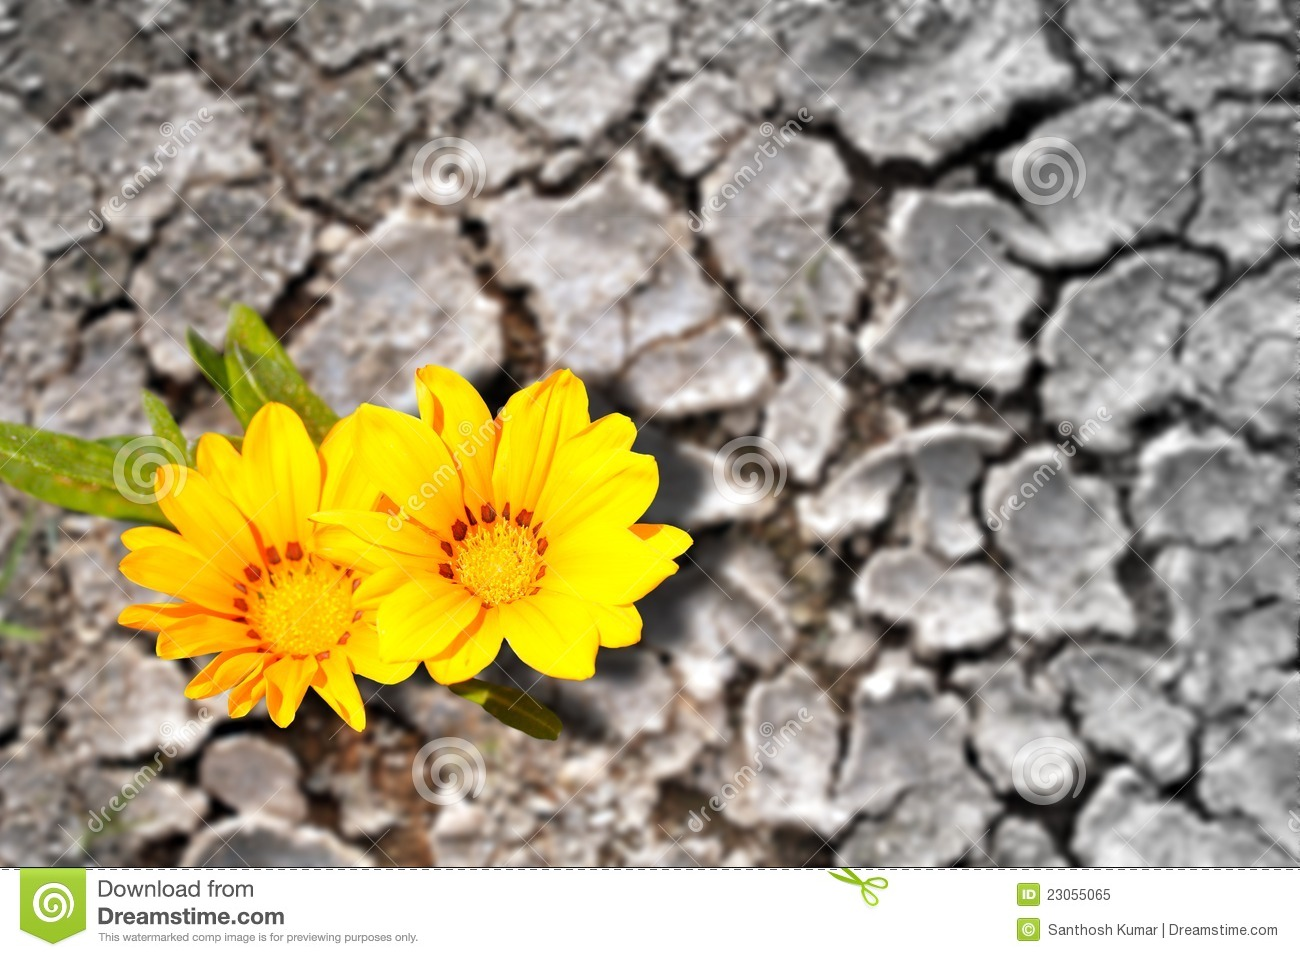 Concept of persistence. Flowers in arid land